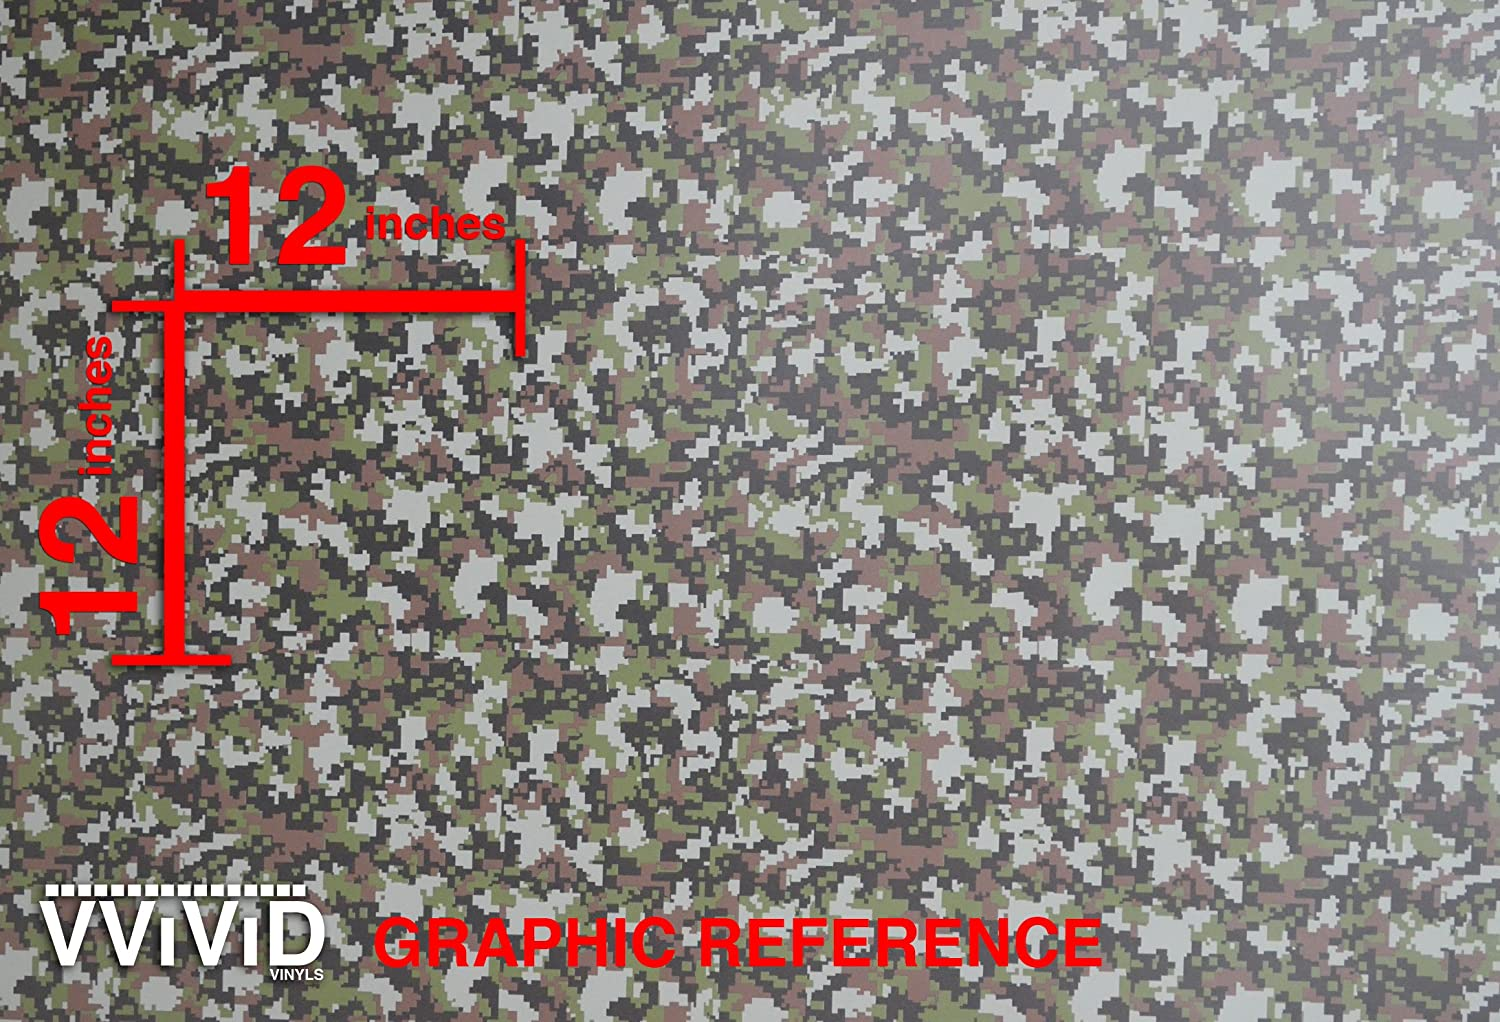 VViViD Vinyl Camouflage Pattern Wrap Air-Release Adhesive Film Sheets 1ft x 5ft, Digital Camo